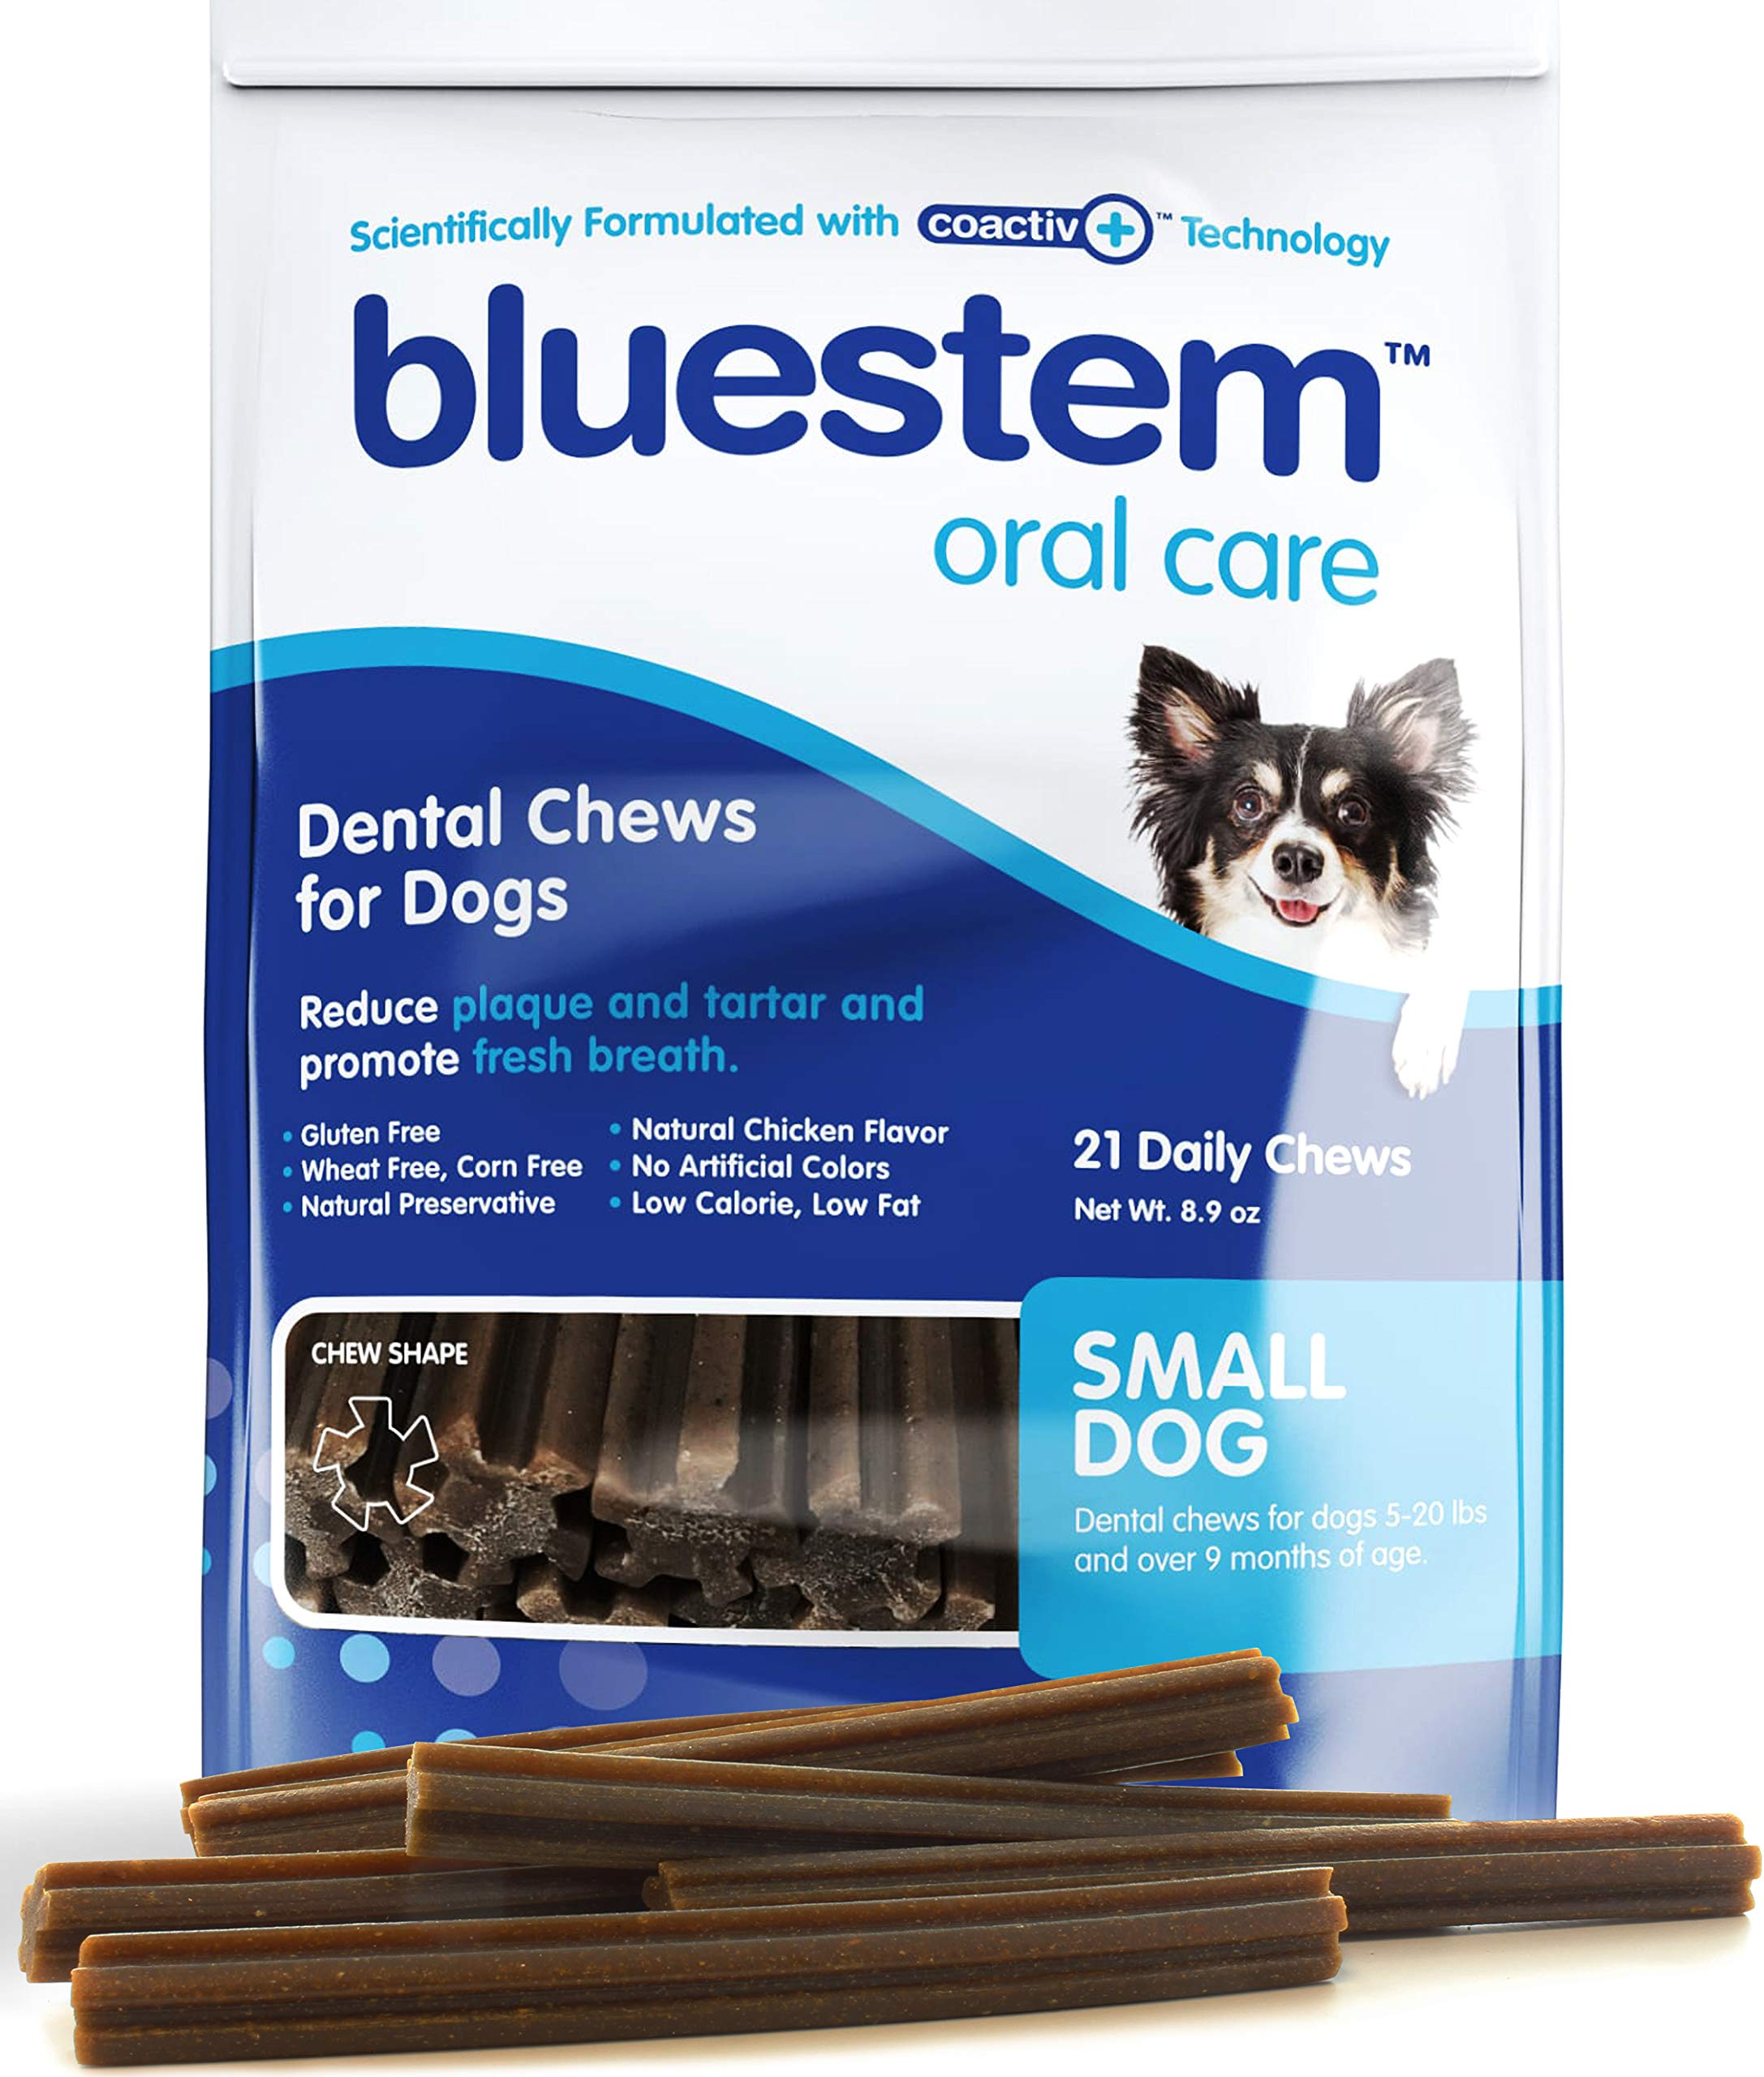 Dog Dental Chews: Rawhide Free Treat Teeth Cleaning Sticks for ALL Breed of Small, Medium, Large Dogs. Mini Brushing Chew Stick Treats Plaque Tartar & Bad Breath. Healthy Pet Food Supplies MADE IN USA